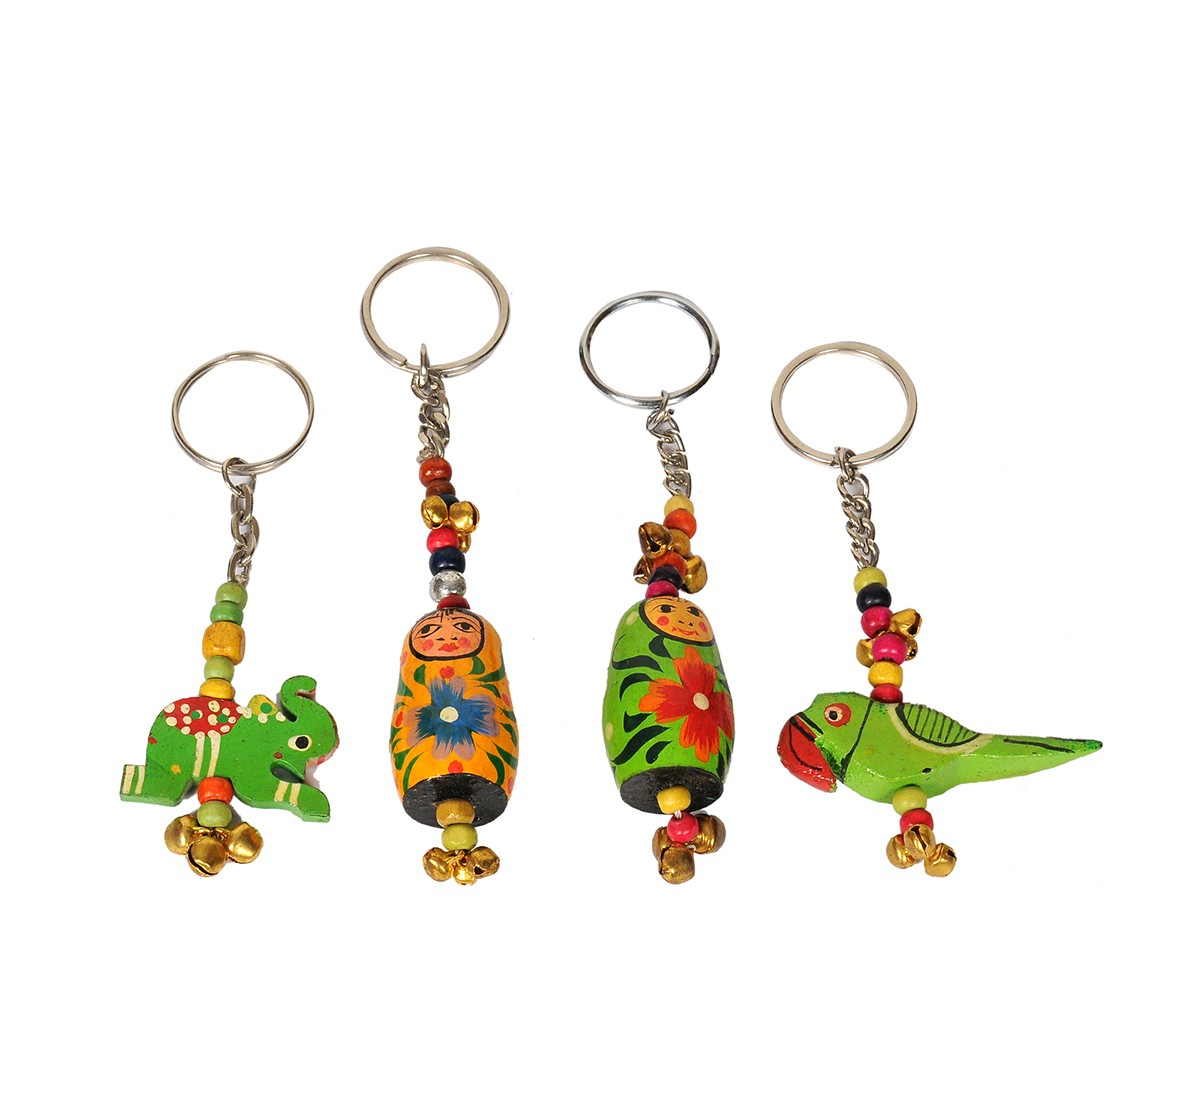 Craft & Culture Wooden Keychain Set of 2  for Kids age 3Y+